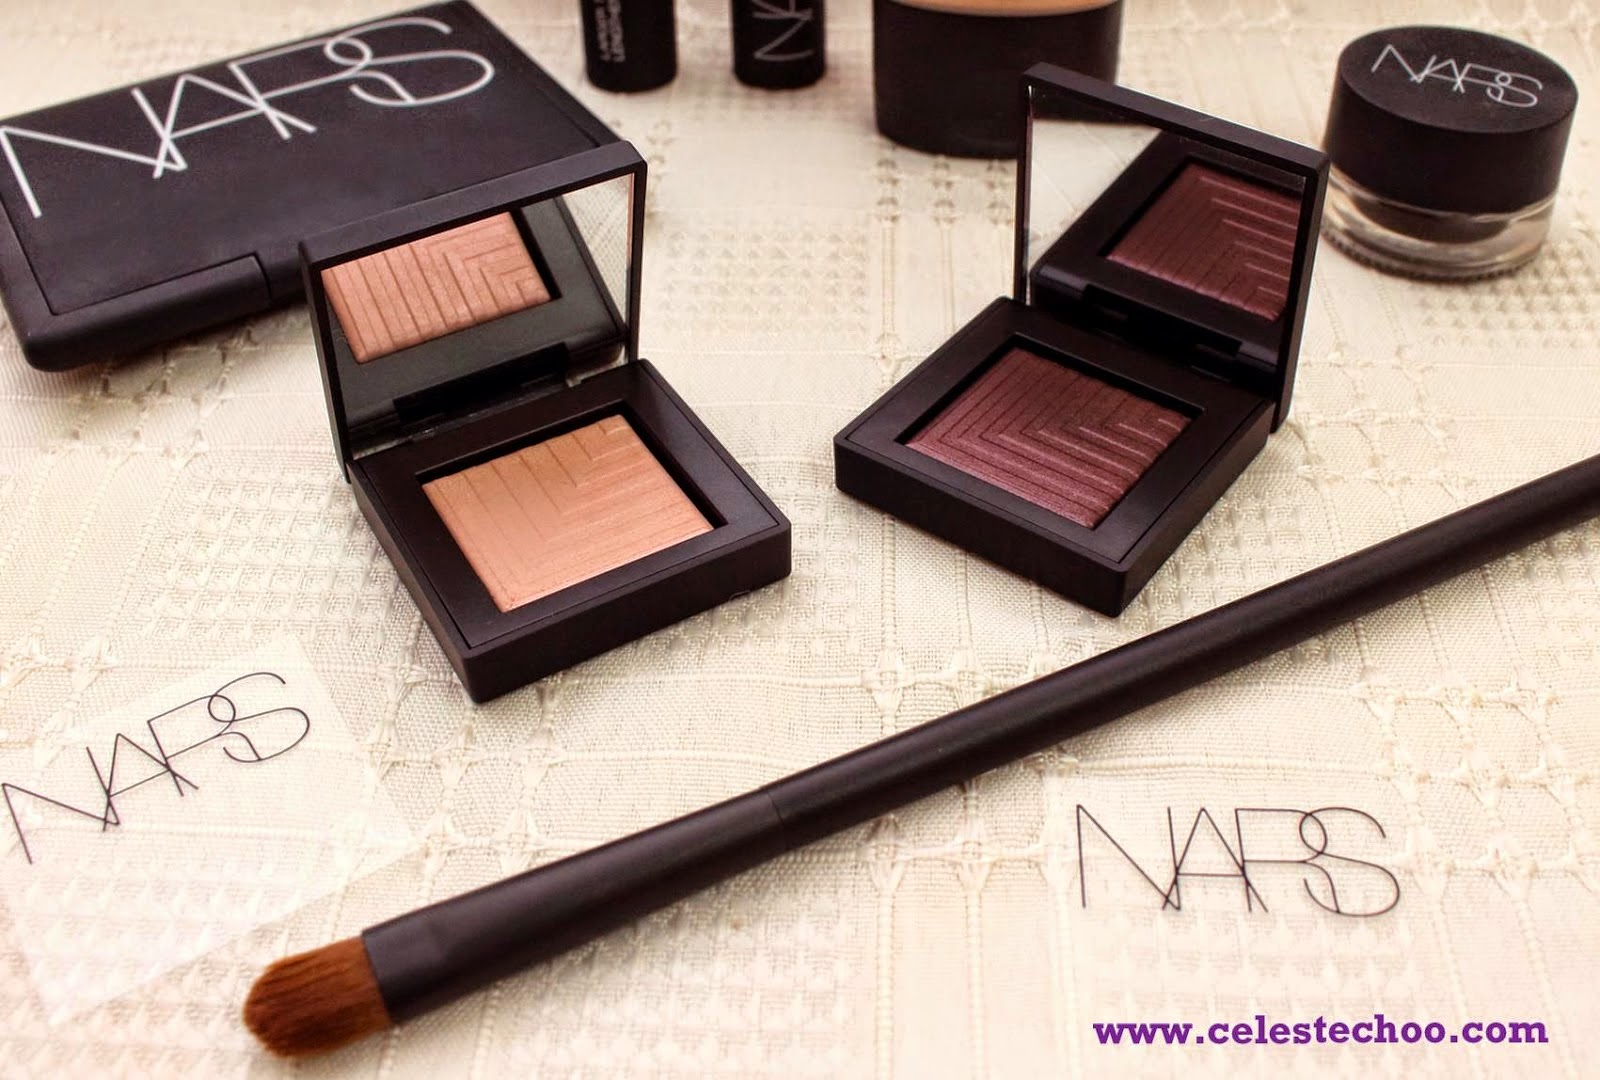 top-eye-makeup-nars-eye-paint-dual-eyeshadow